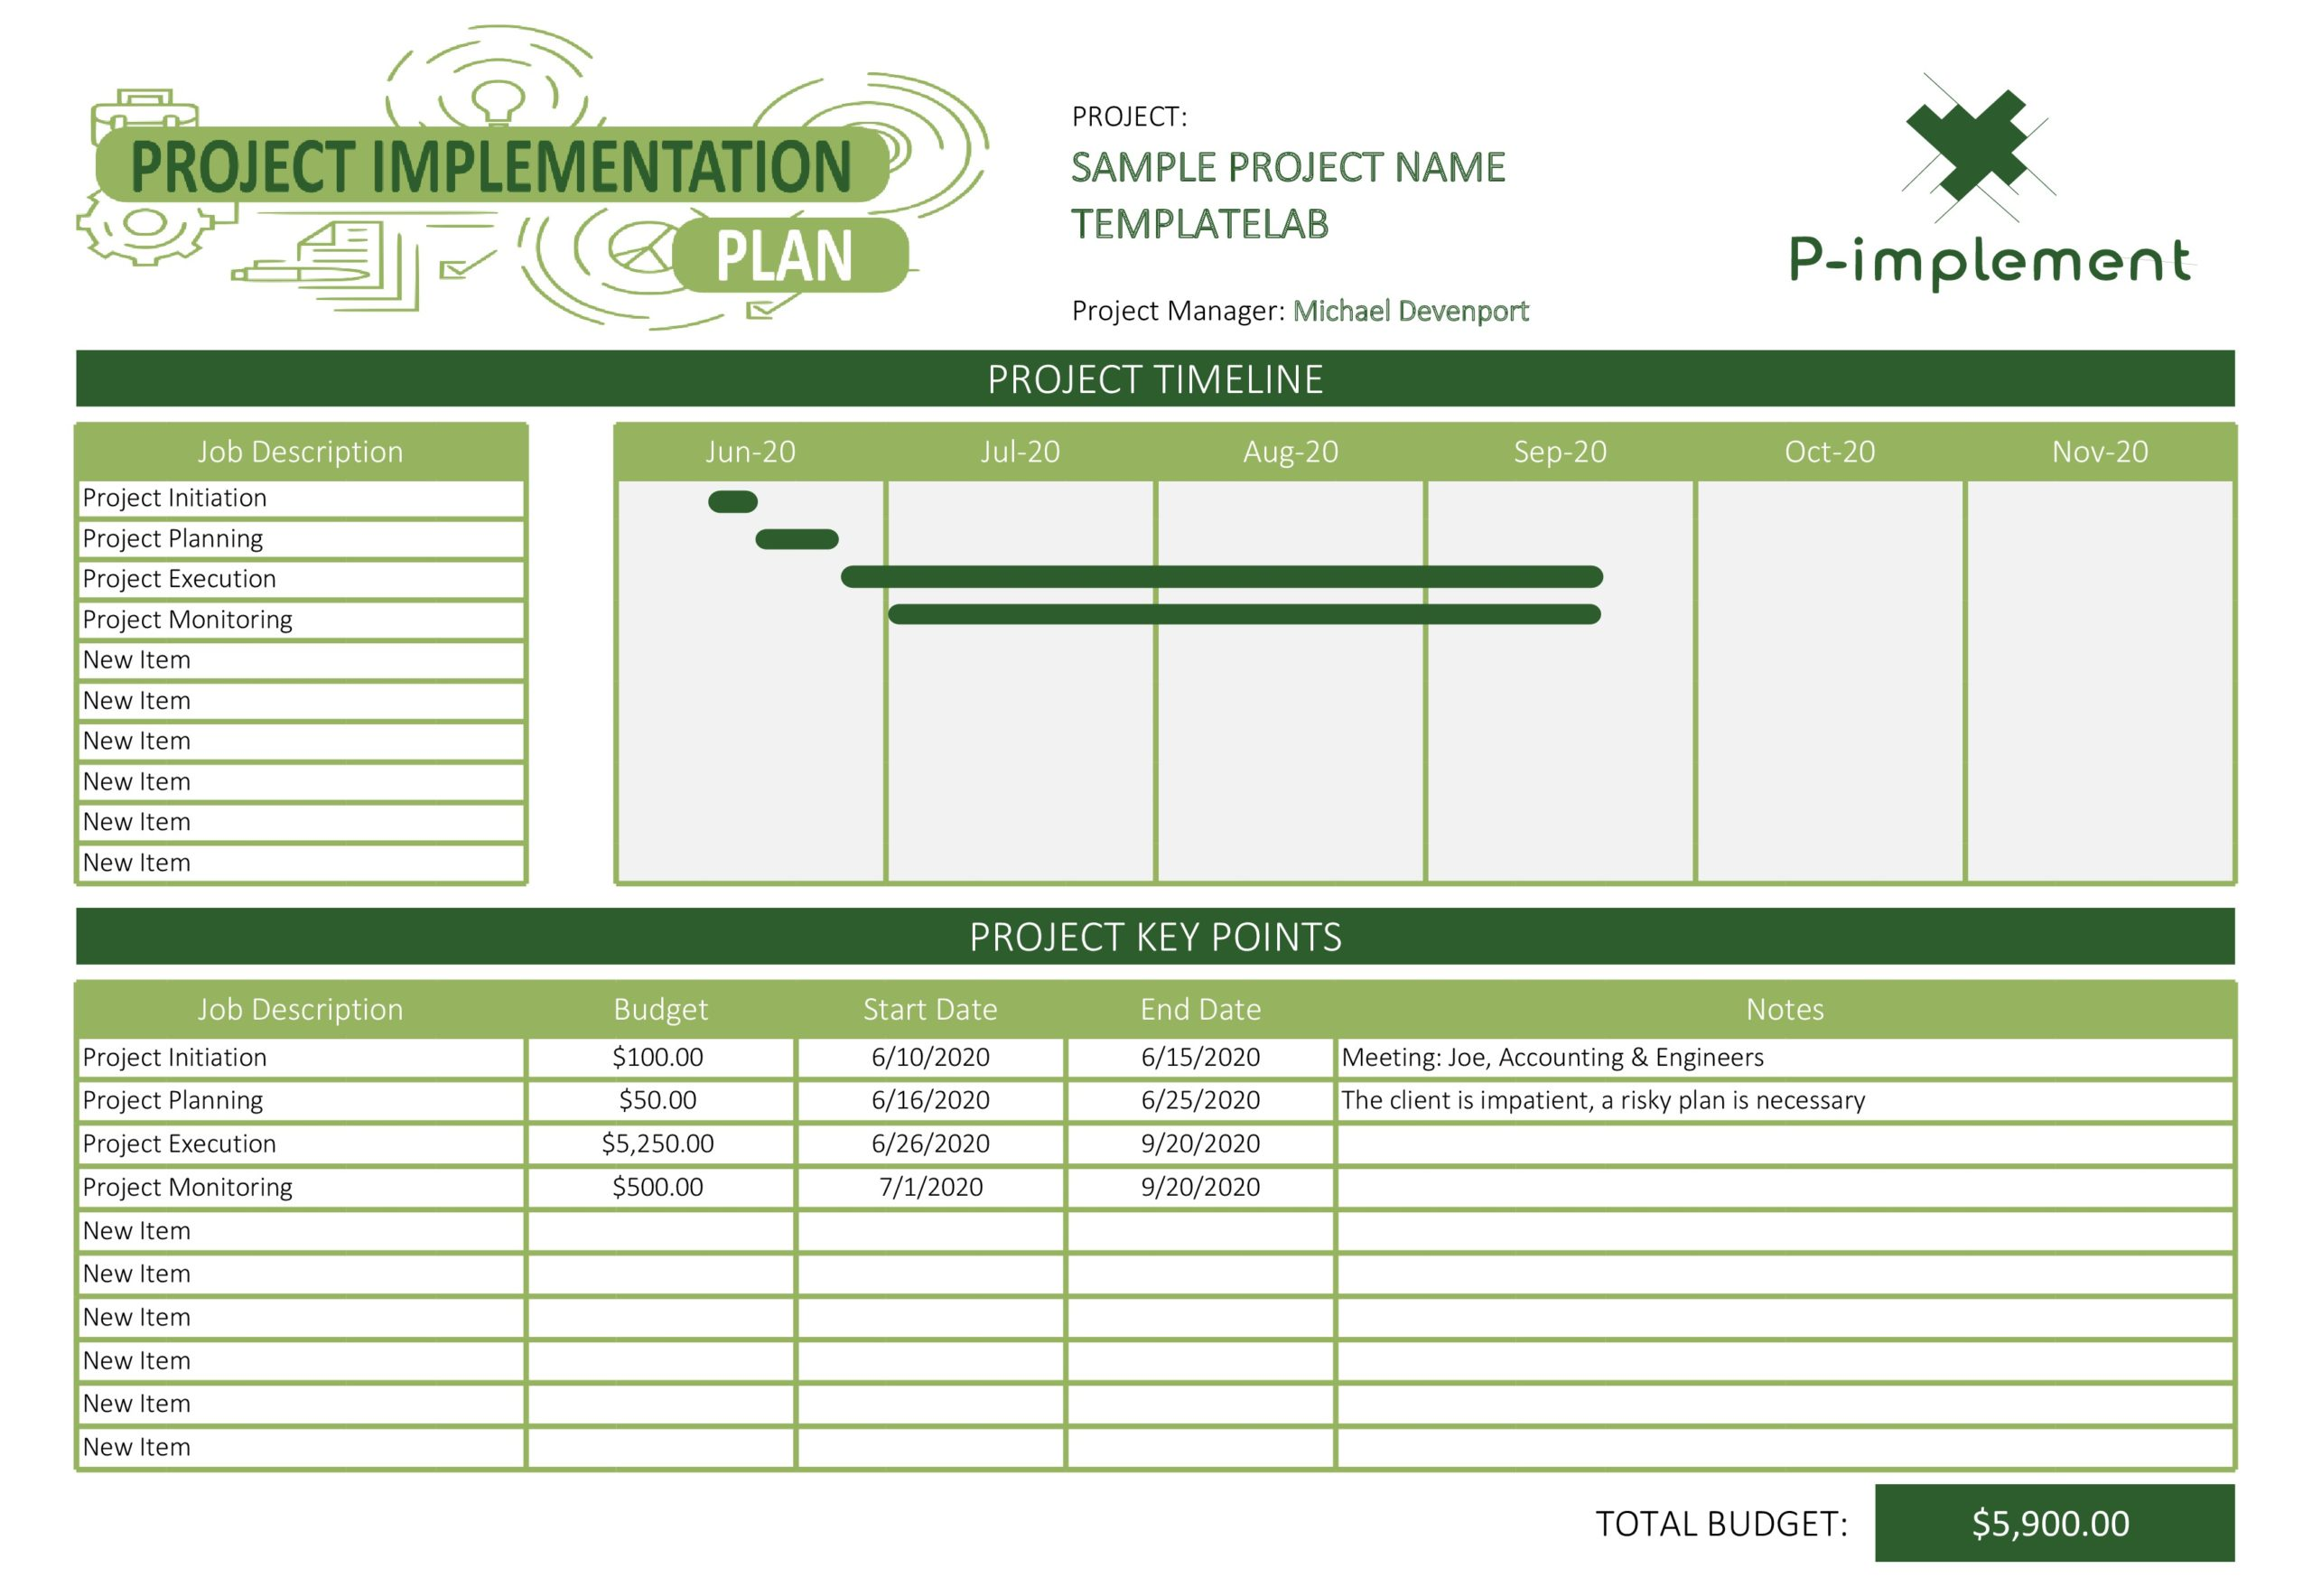 Free Project Implementation Plan Template - TemplateLab.com